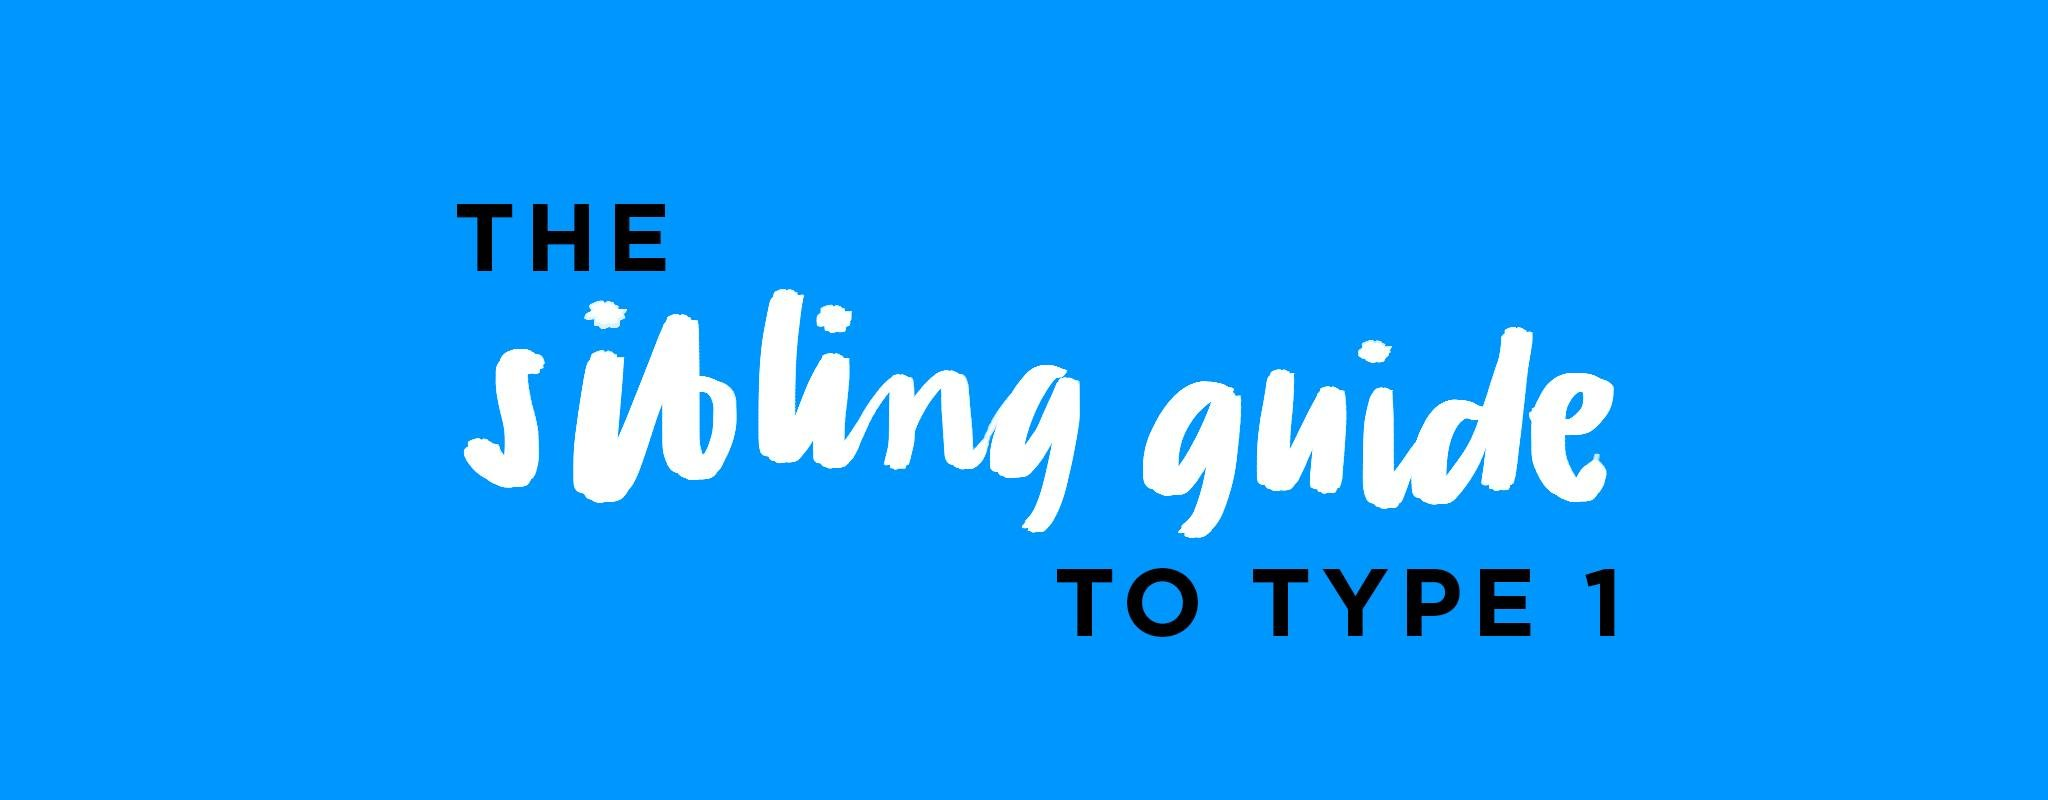 The Sibling Guide to Type 1 Diabetes